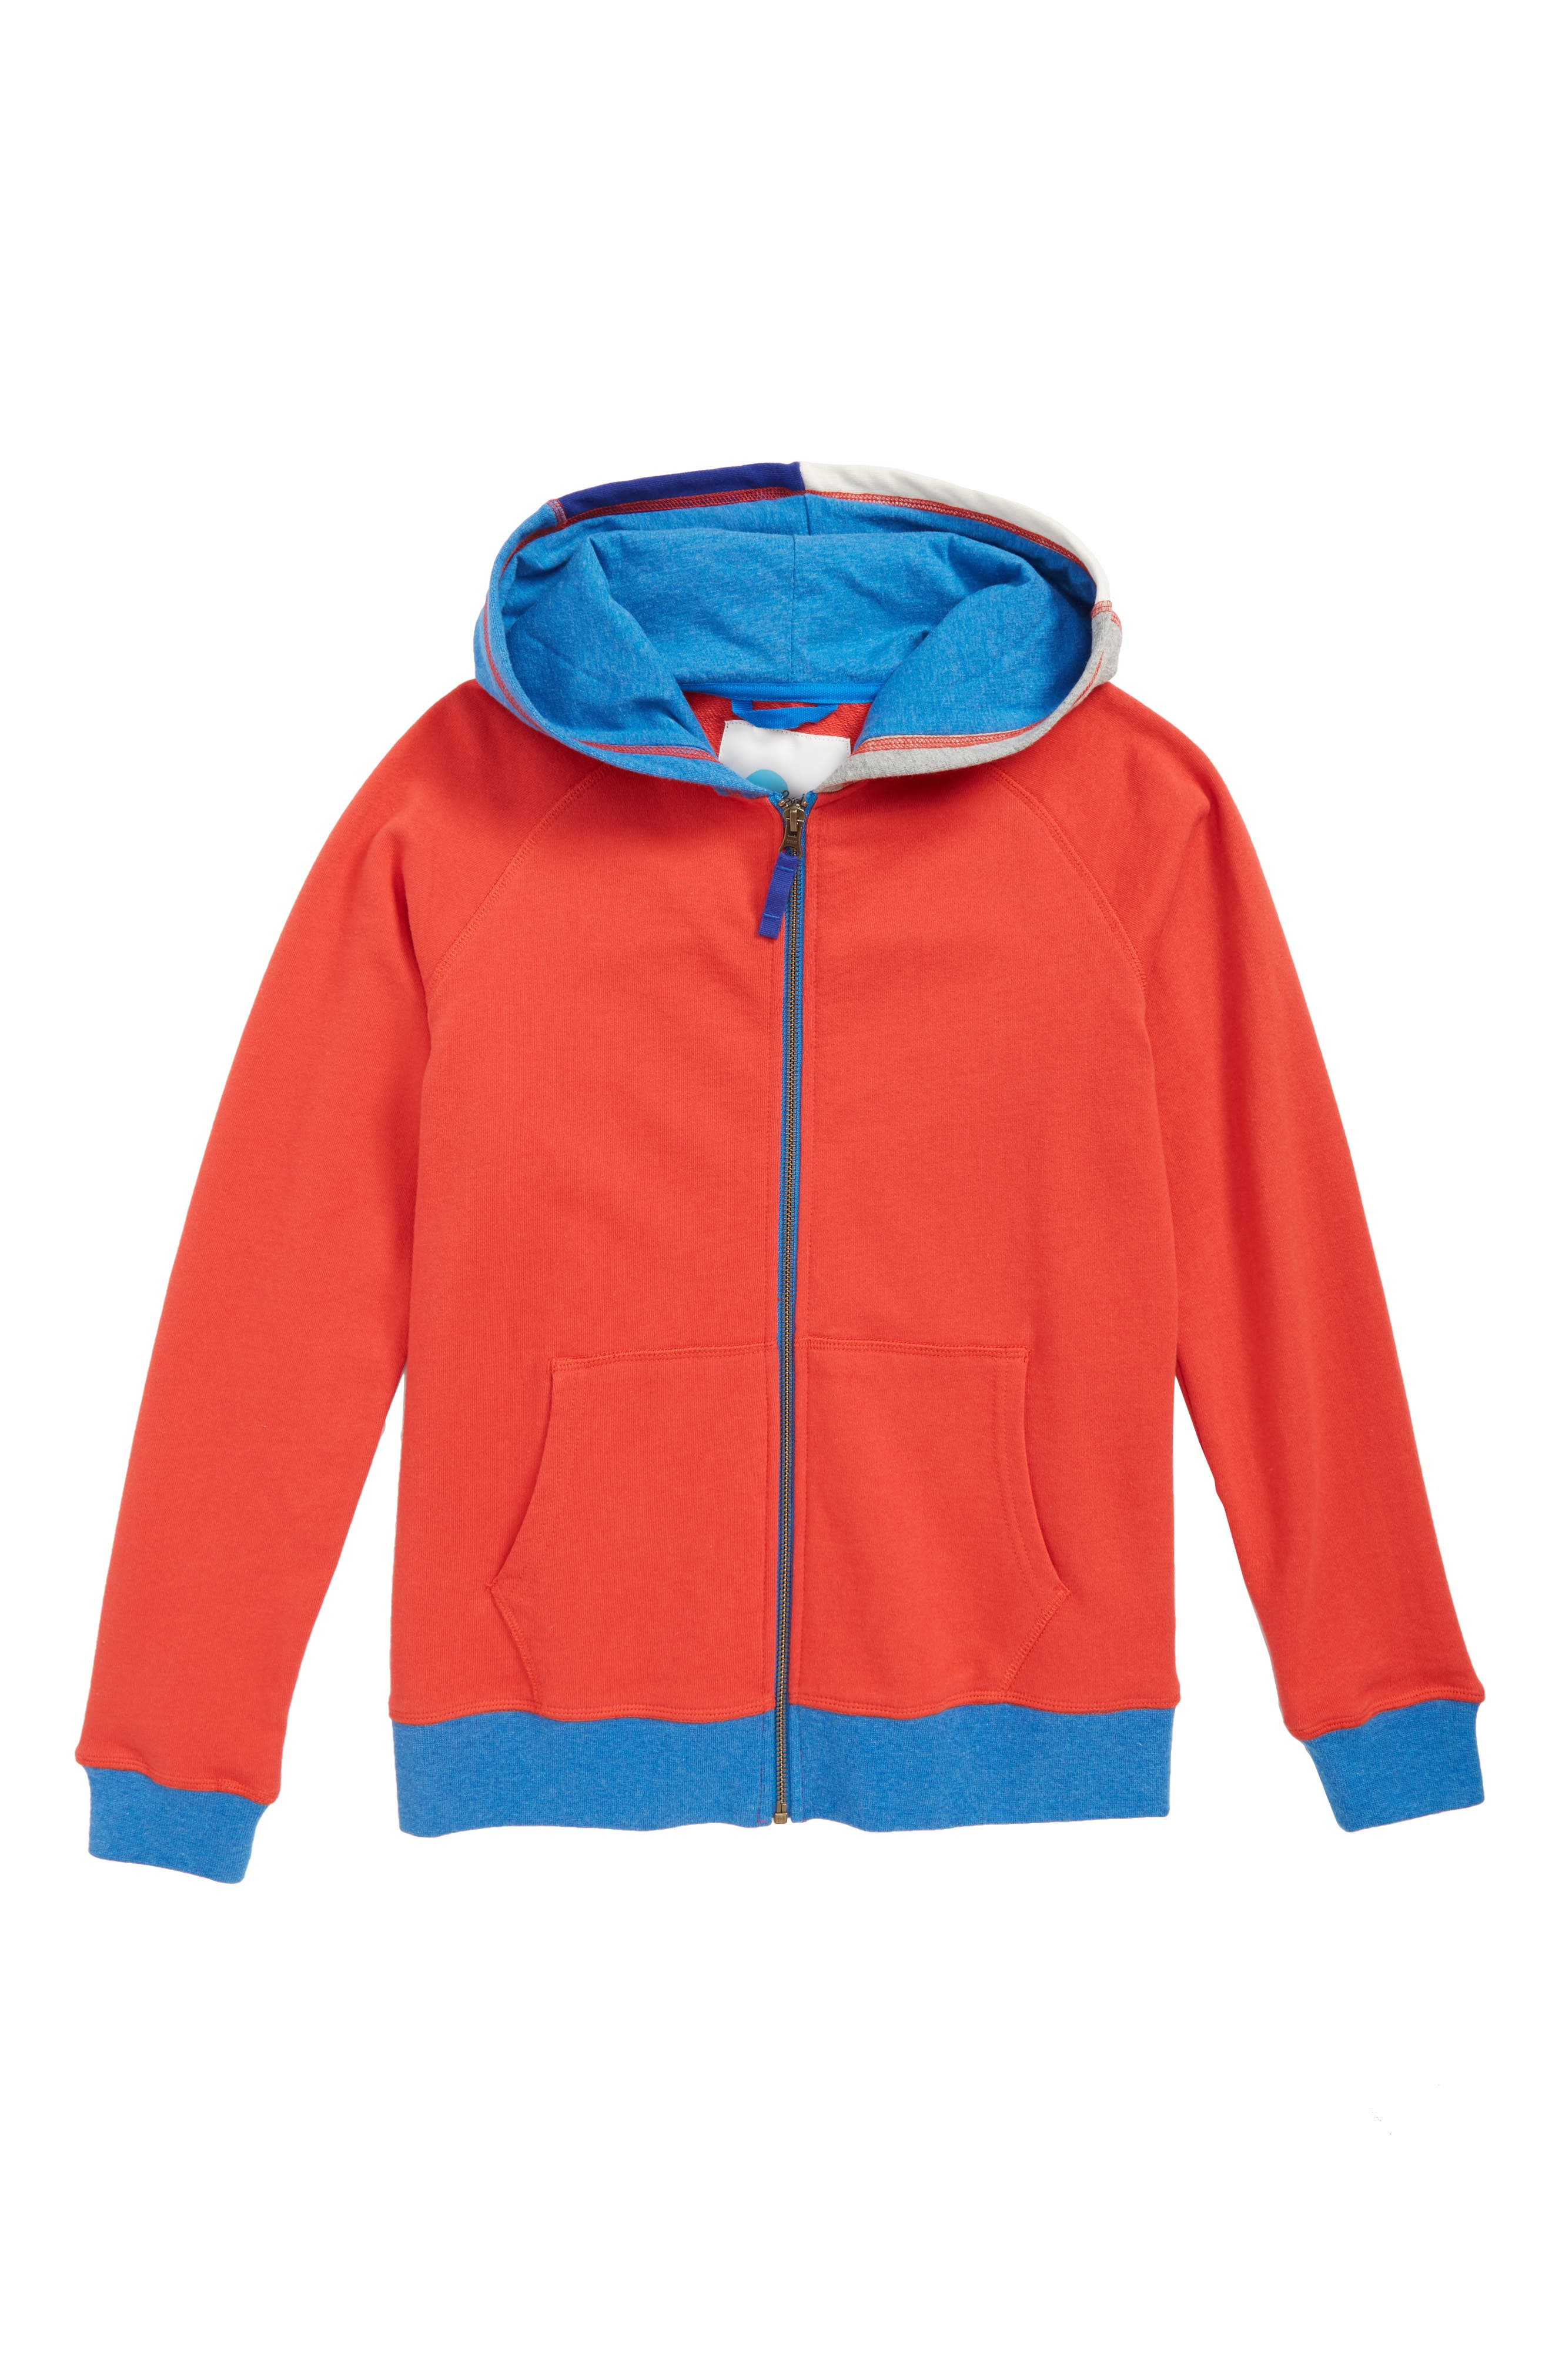 Patchwork Zip Hoodie,                             Main thumbnail 1, color,                             Salsa Red